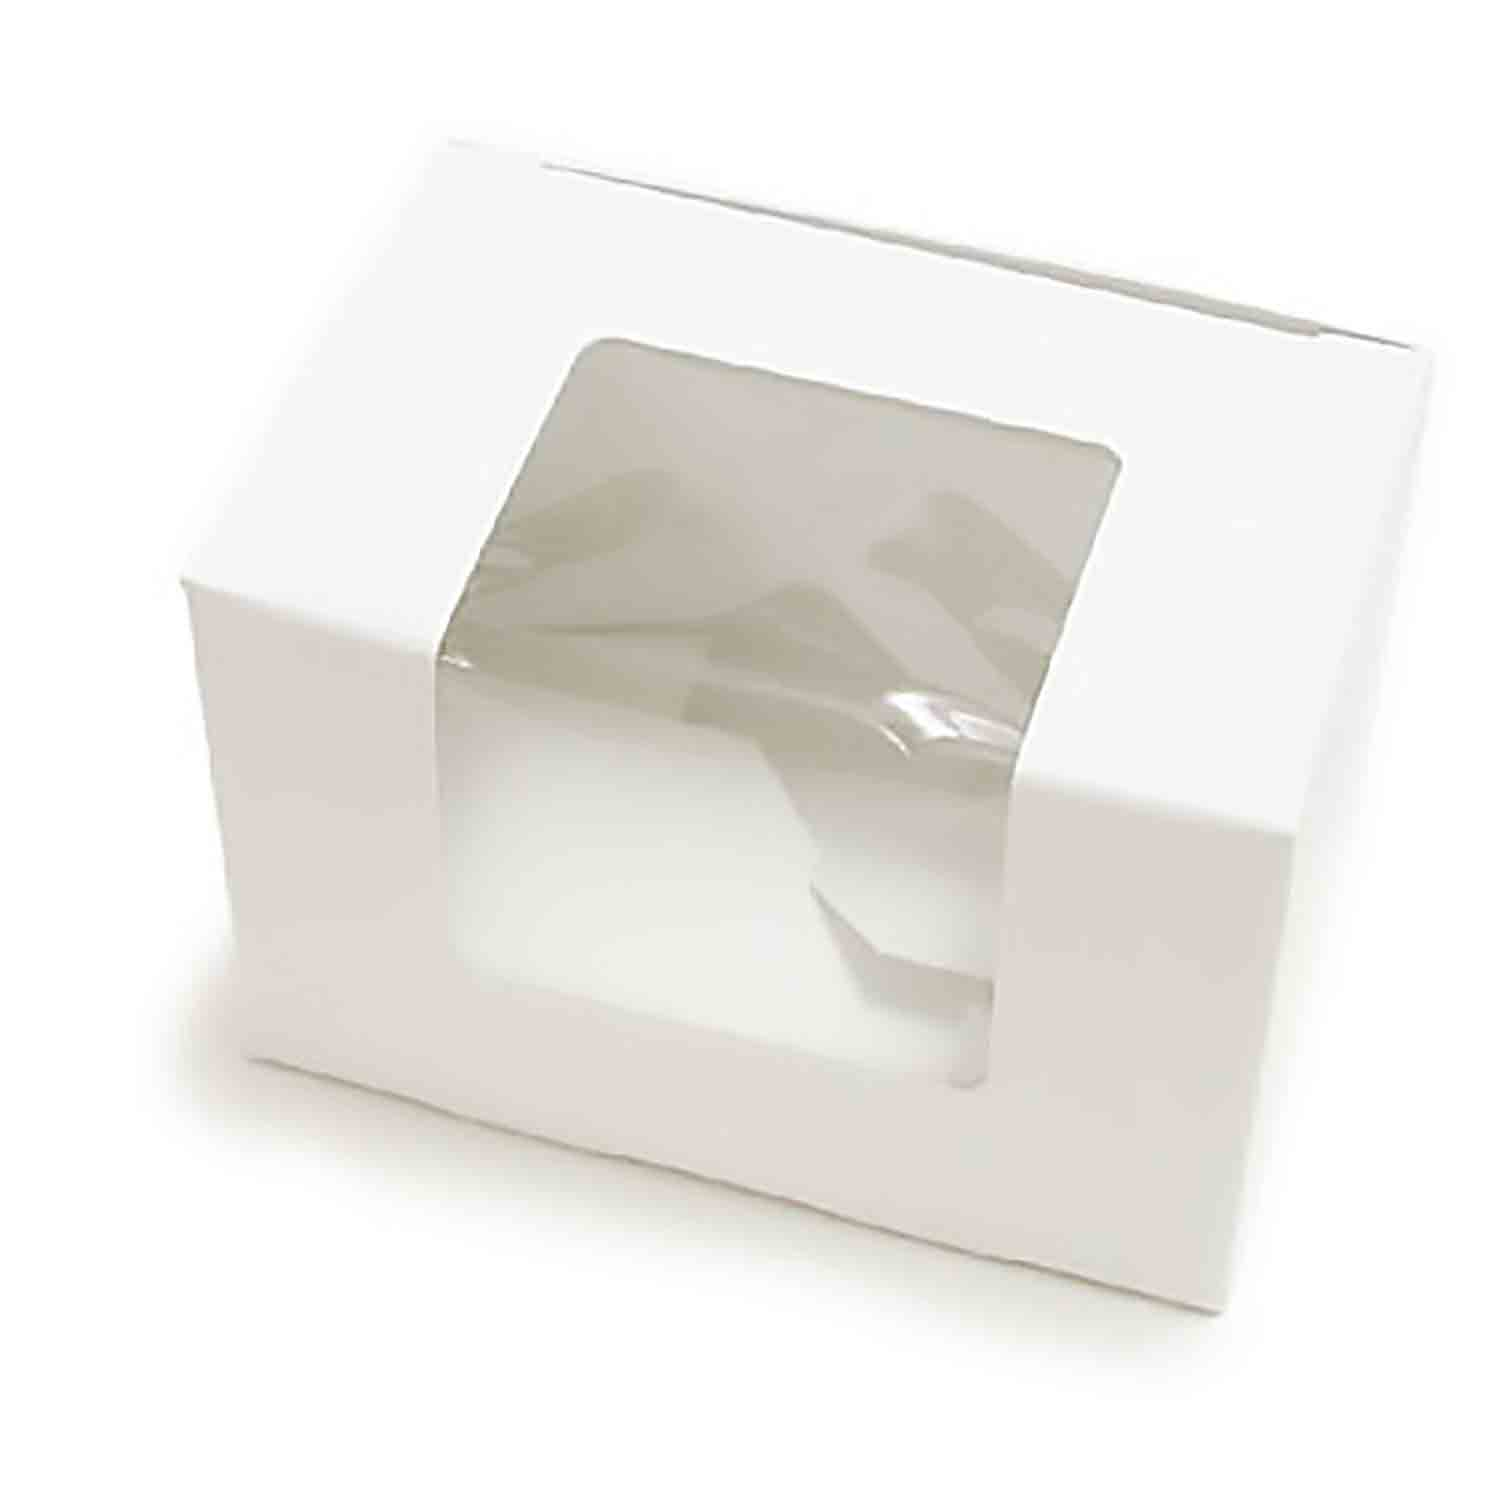 1/2 lb. White Egg Candy Box with Window